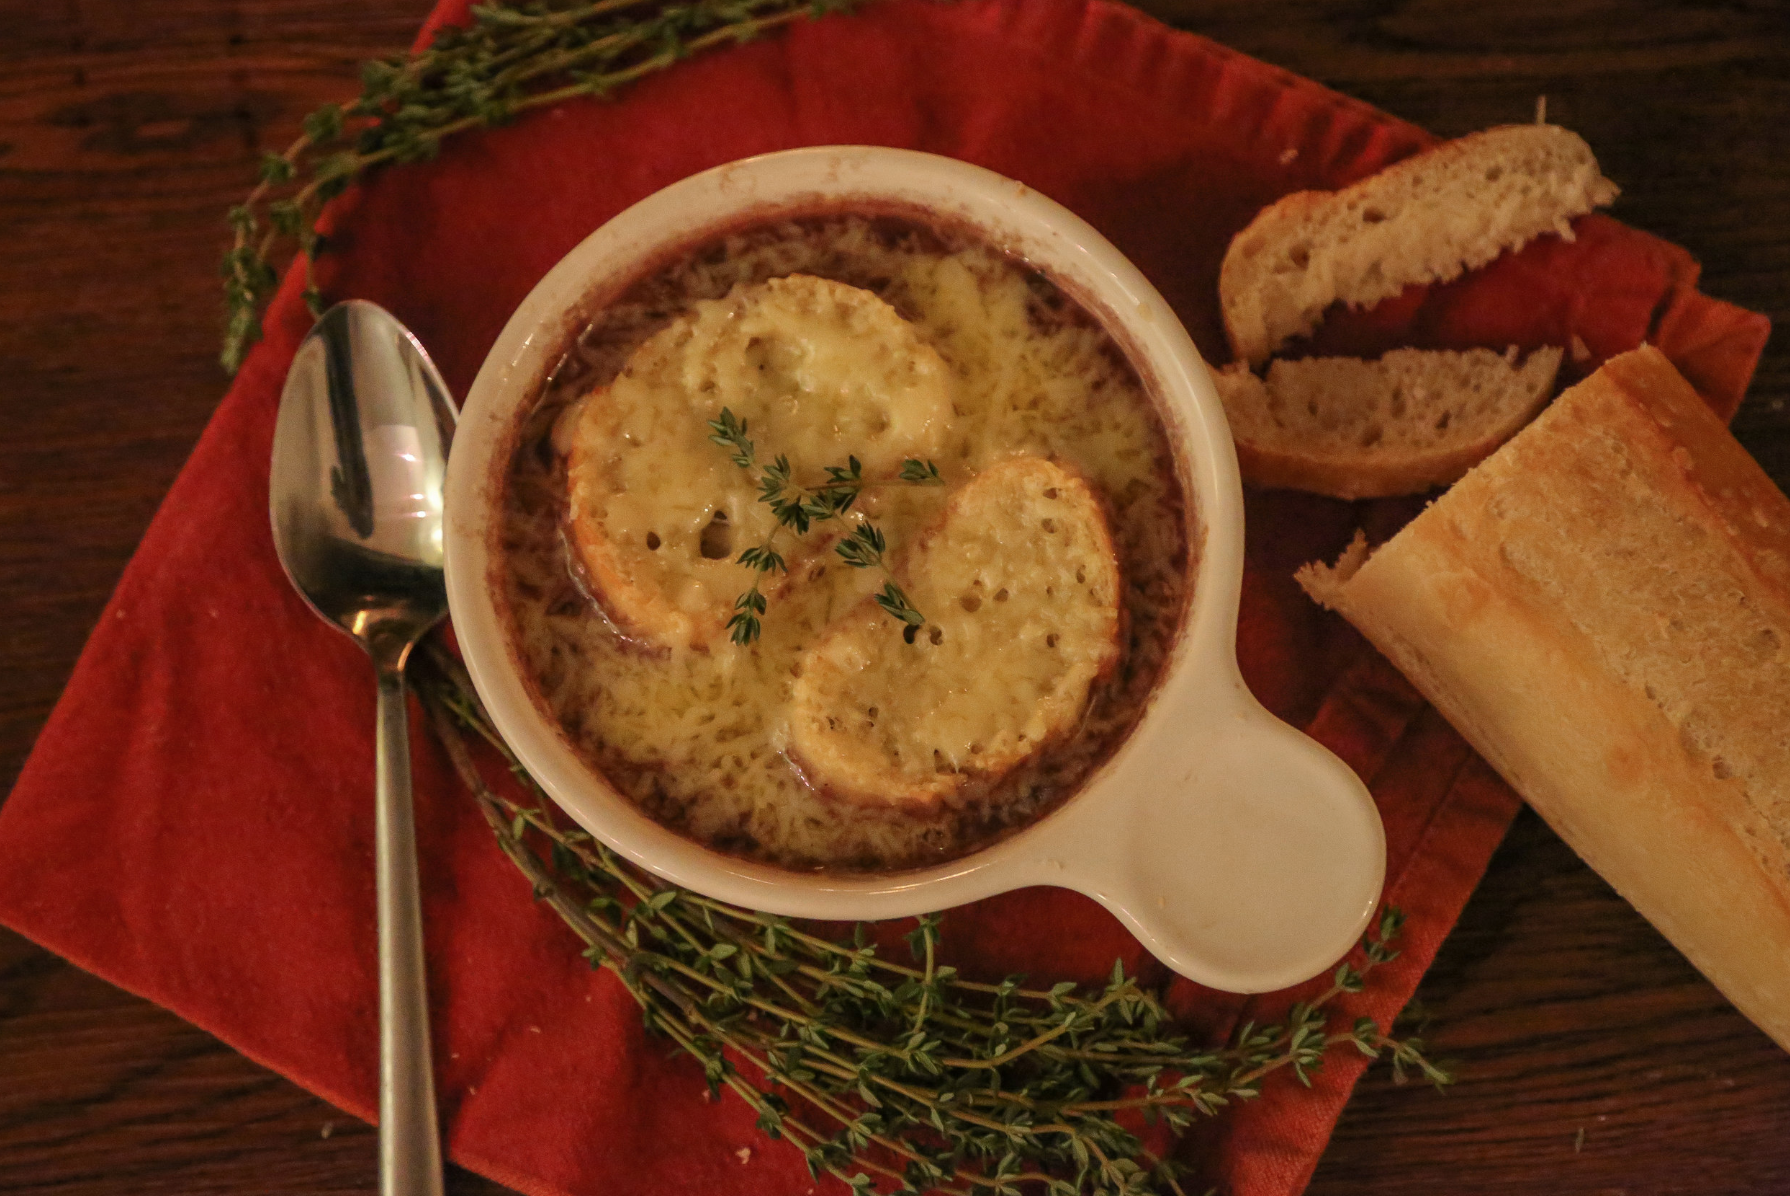 Bistro style french onion soup